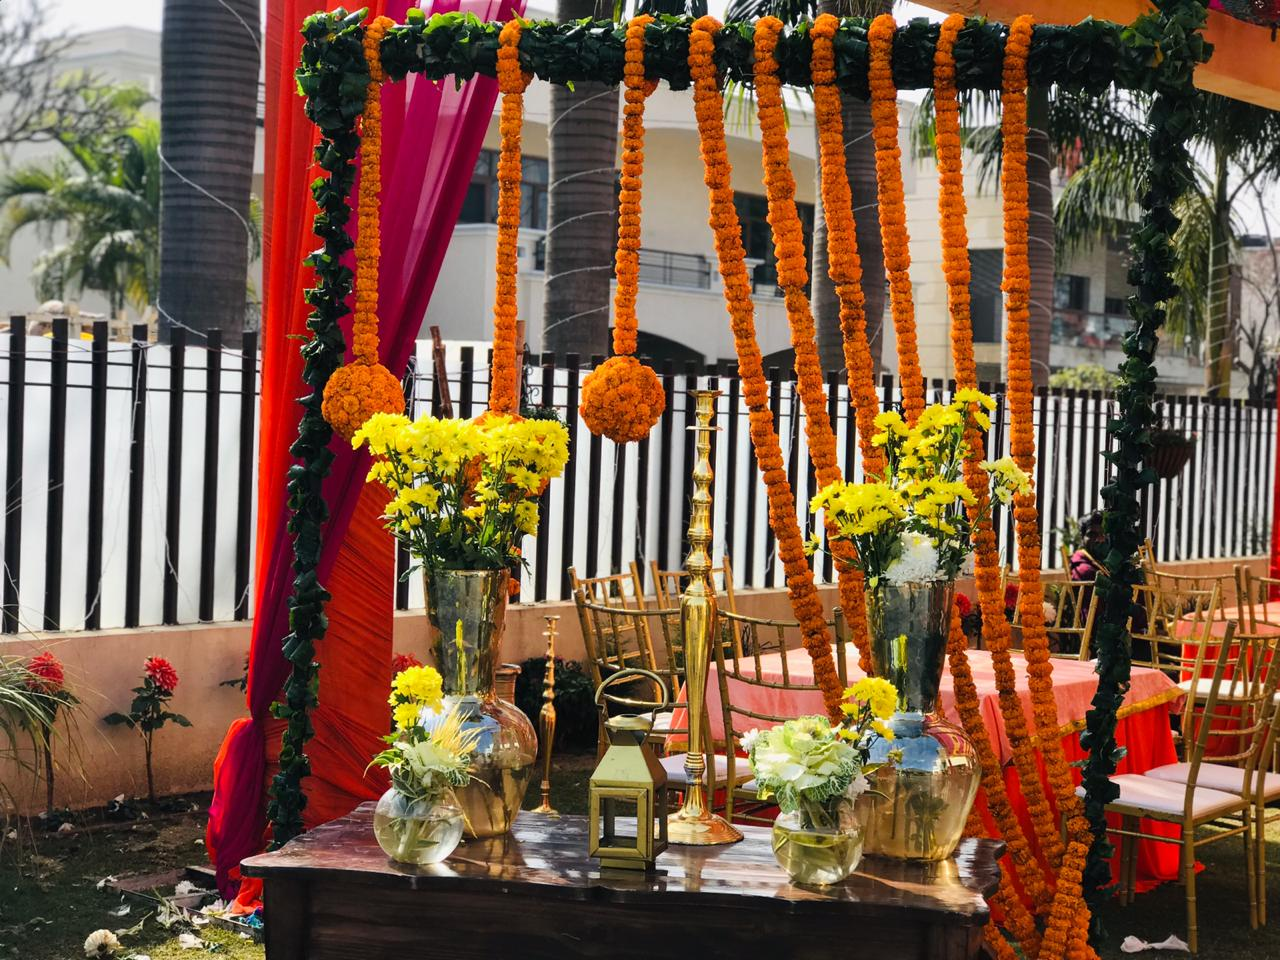 Best Experience wedding planner and caterers in Mohali   Red Tag Caterers   Best services experience wedding planner and caterers in Mohali, best innovative wedding planner and caterers in Mohali, top quality facility wedding planner and caterers in Mohali, best budget weddin - GL64878